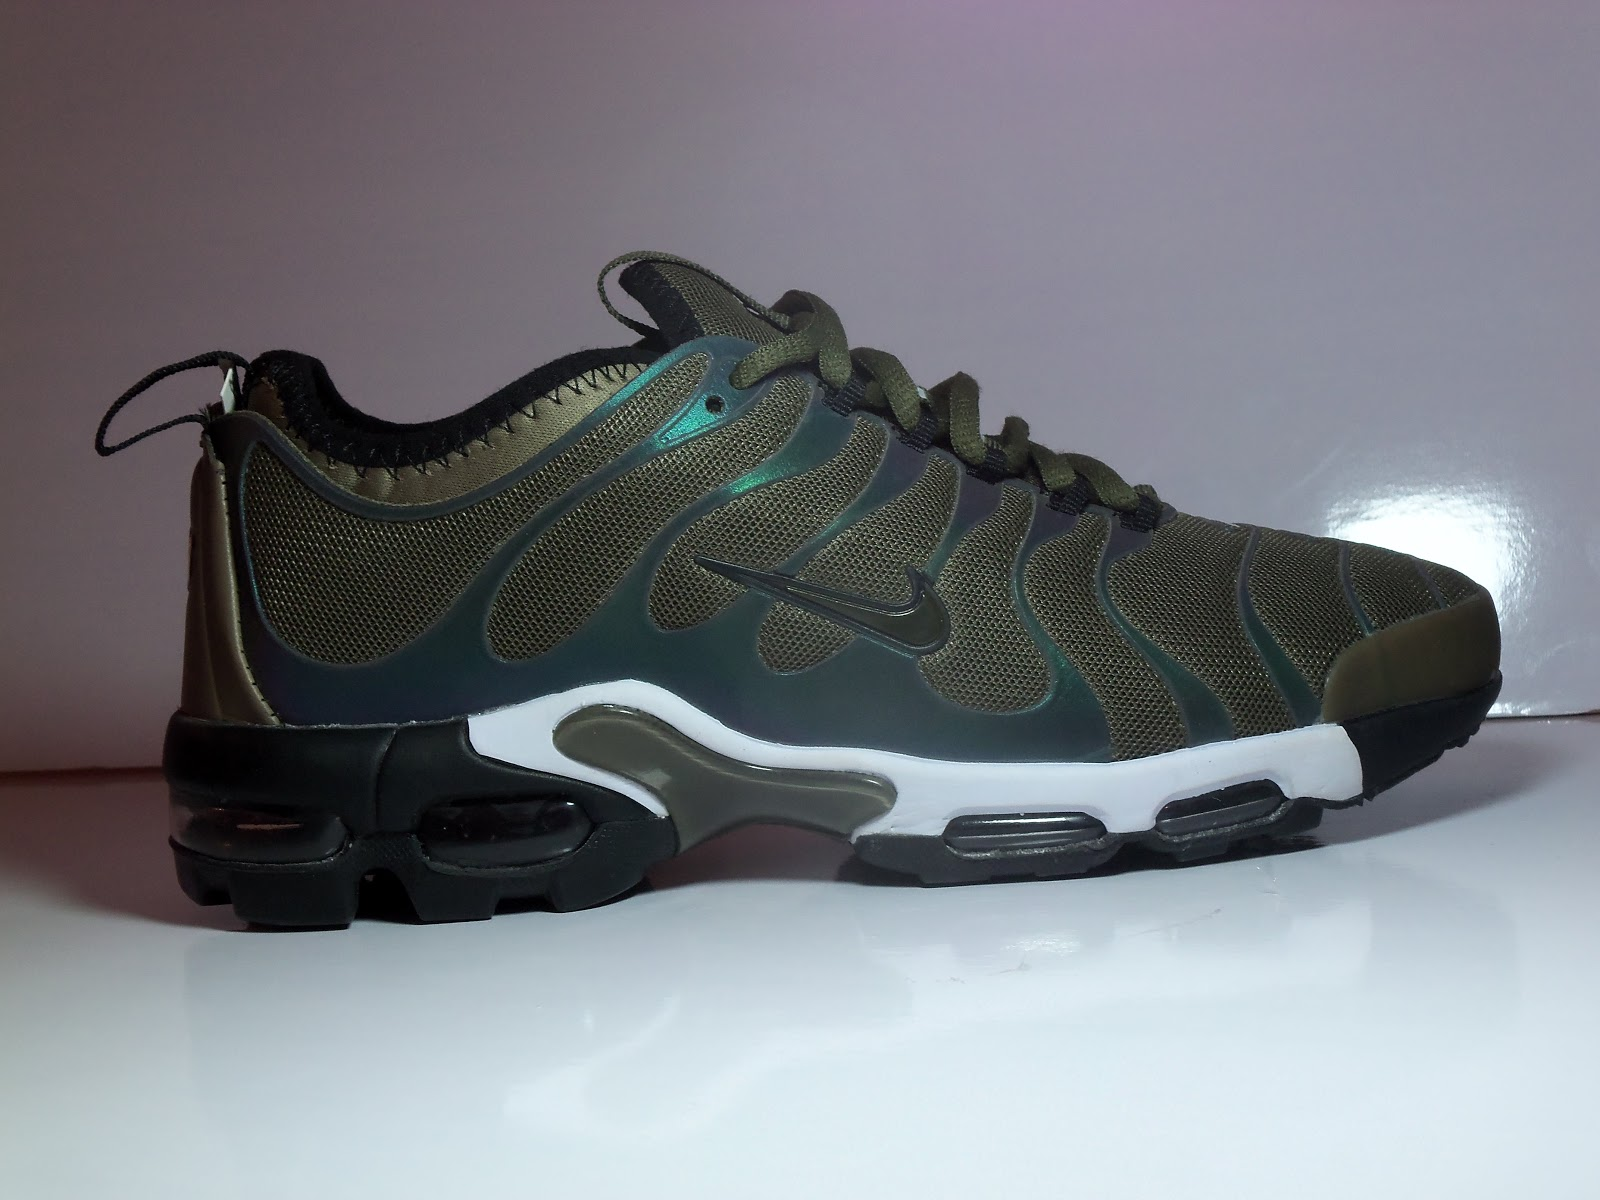 new style nike air max plus tuned 1 tn olive verde 08f89 3e1db